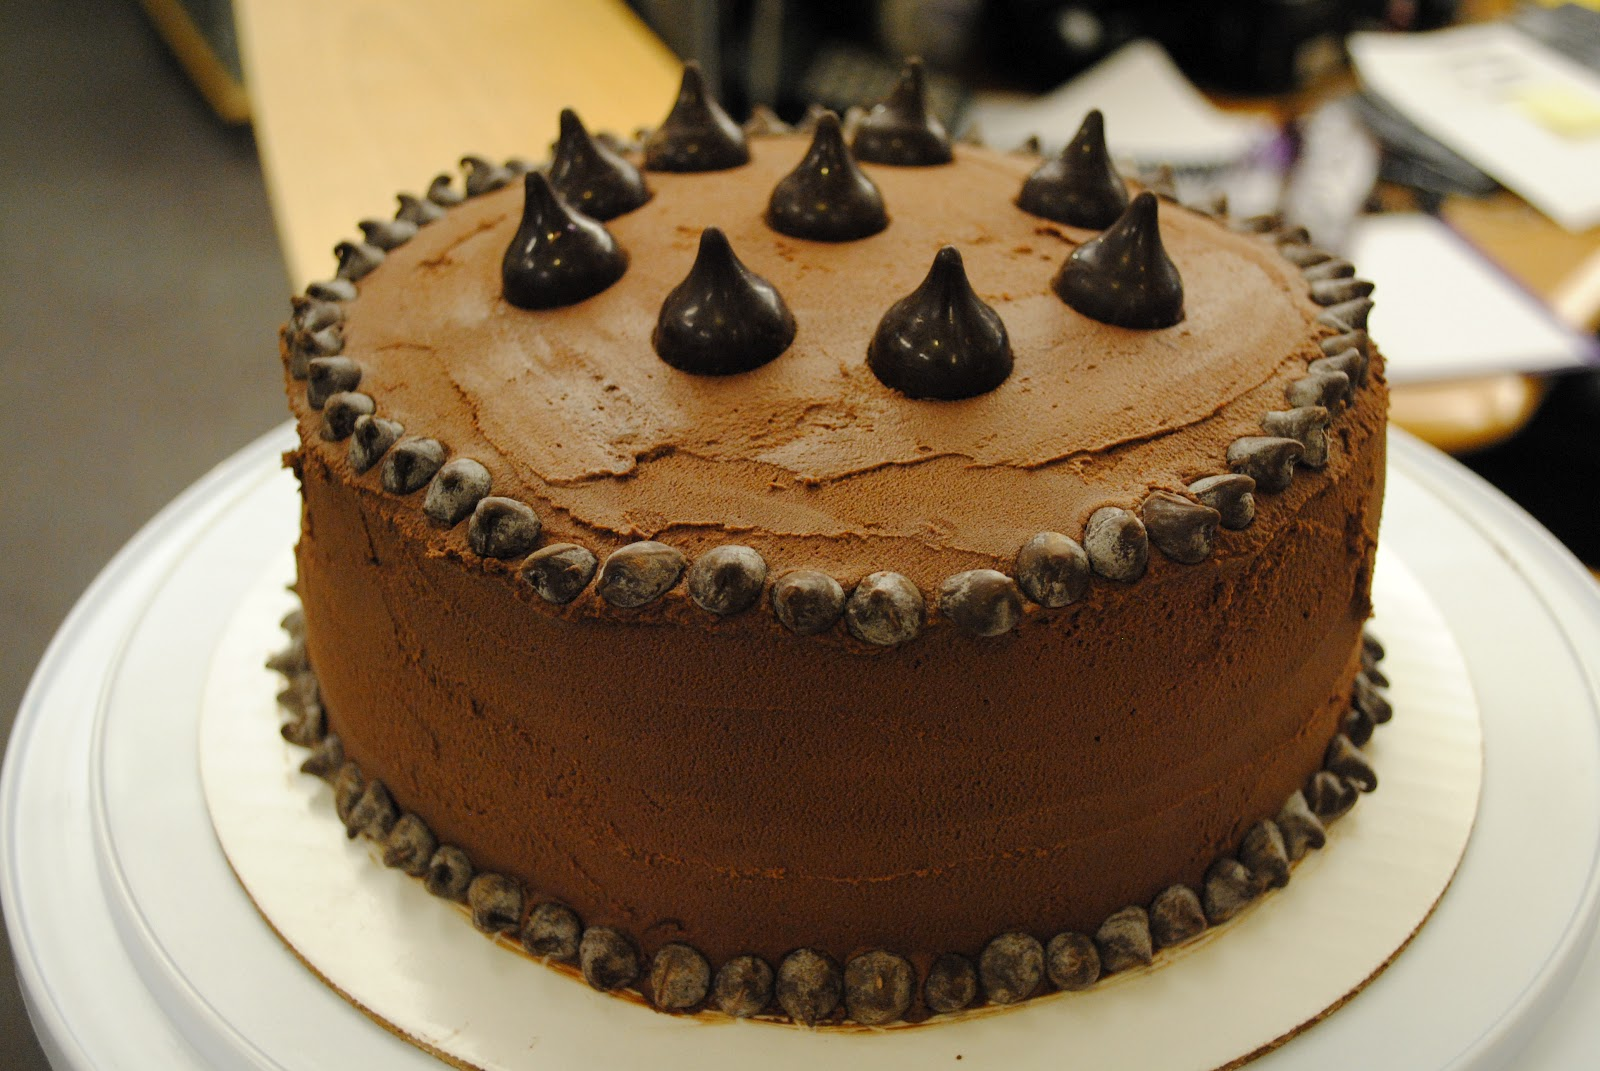 designed by Diana: Chocolate cake